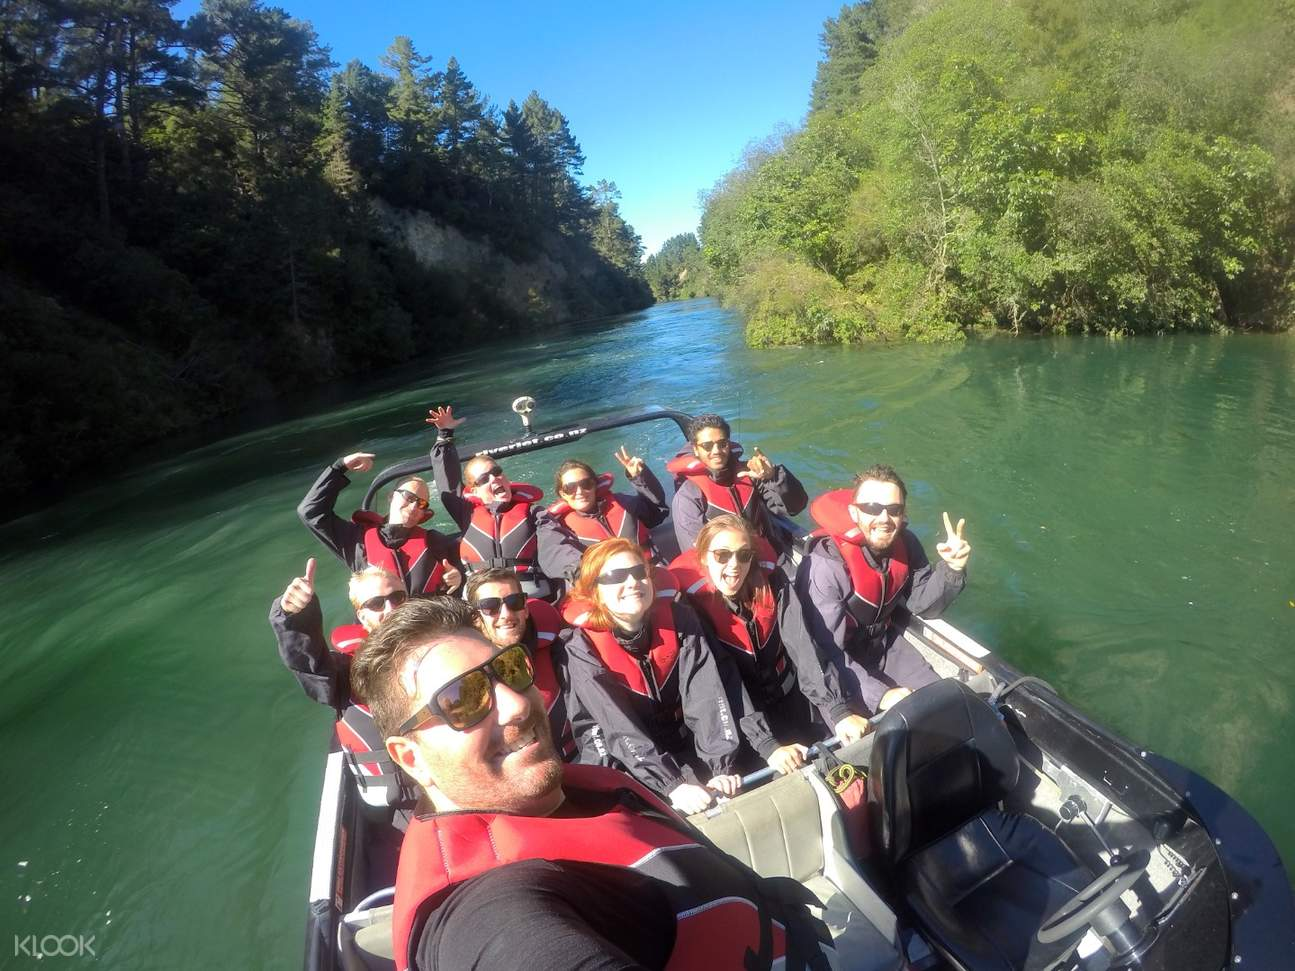 Enjoy the serenity of New Zealand's untouched nature